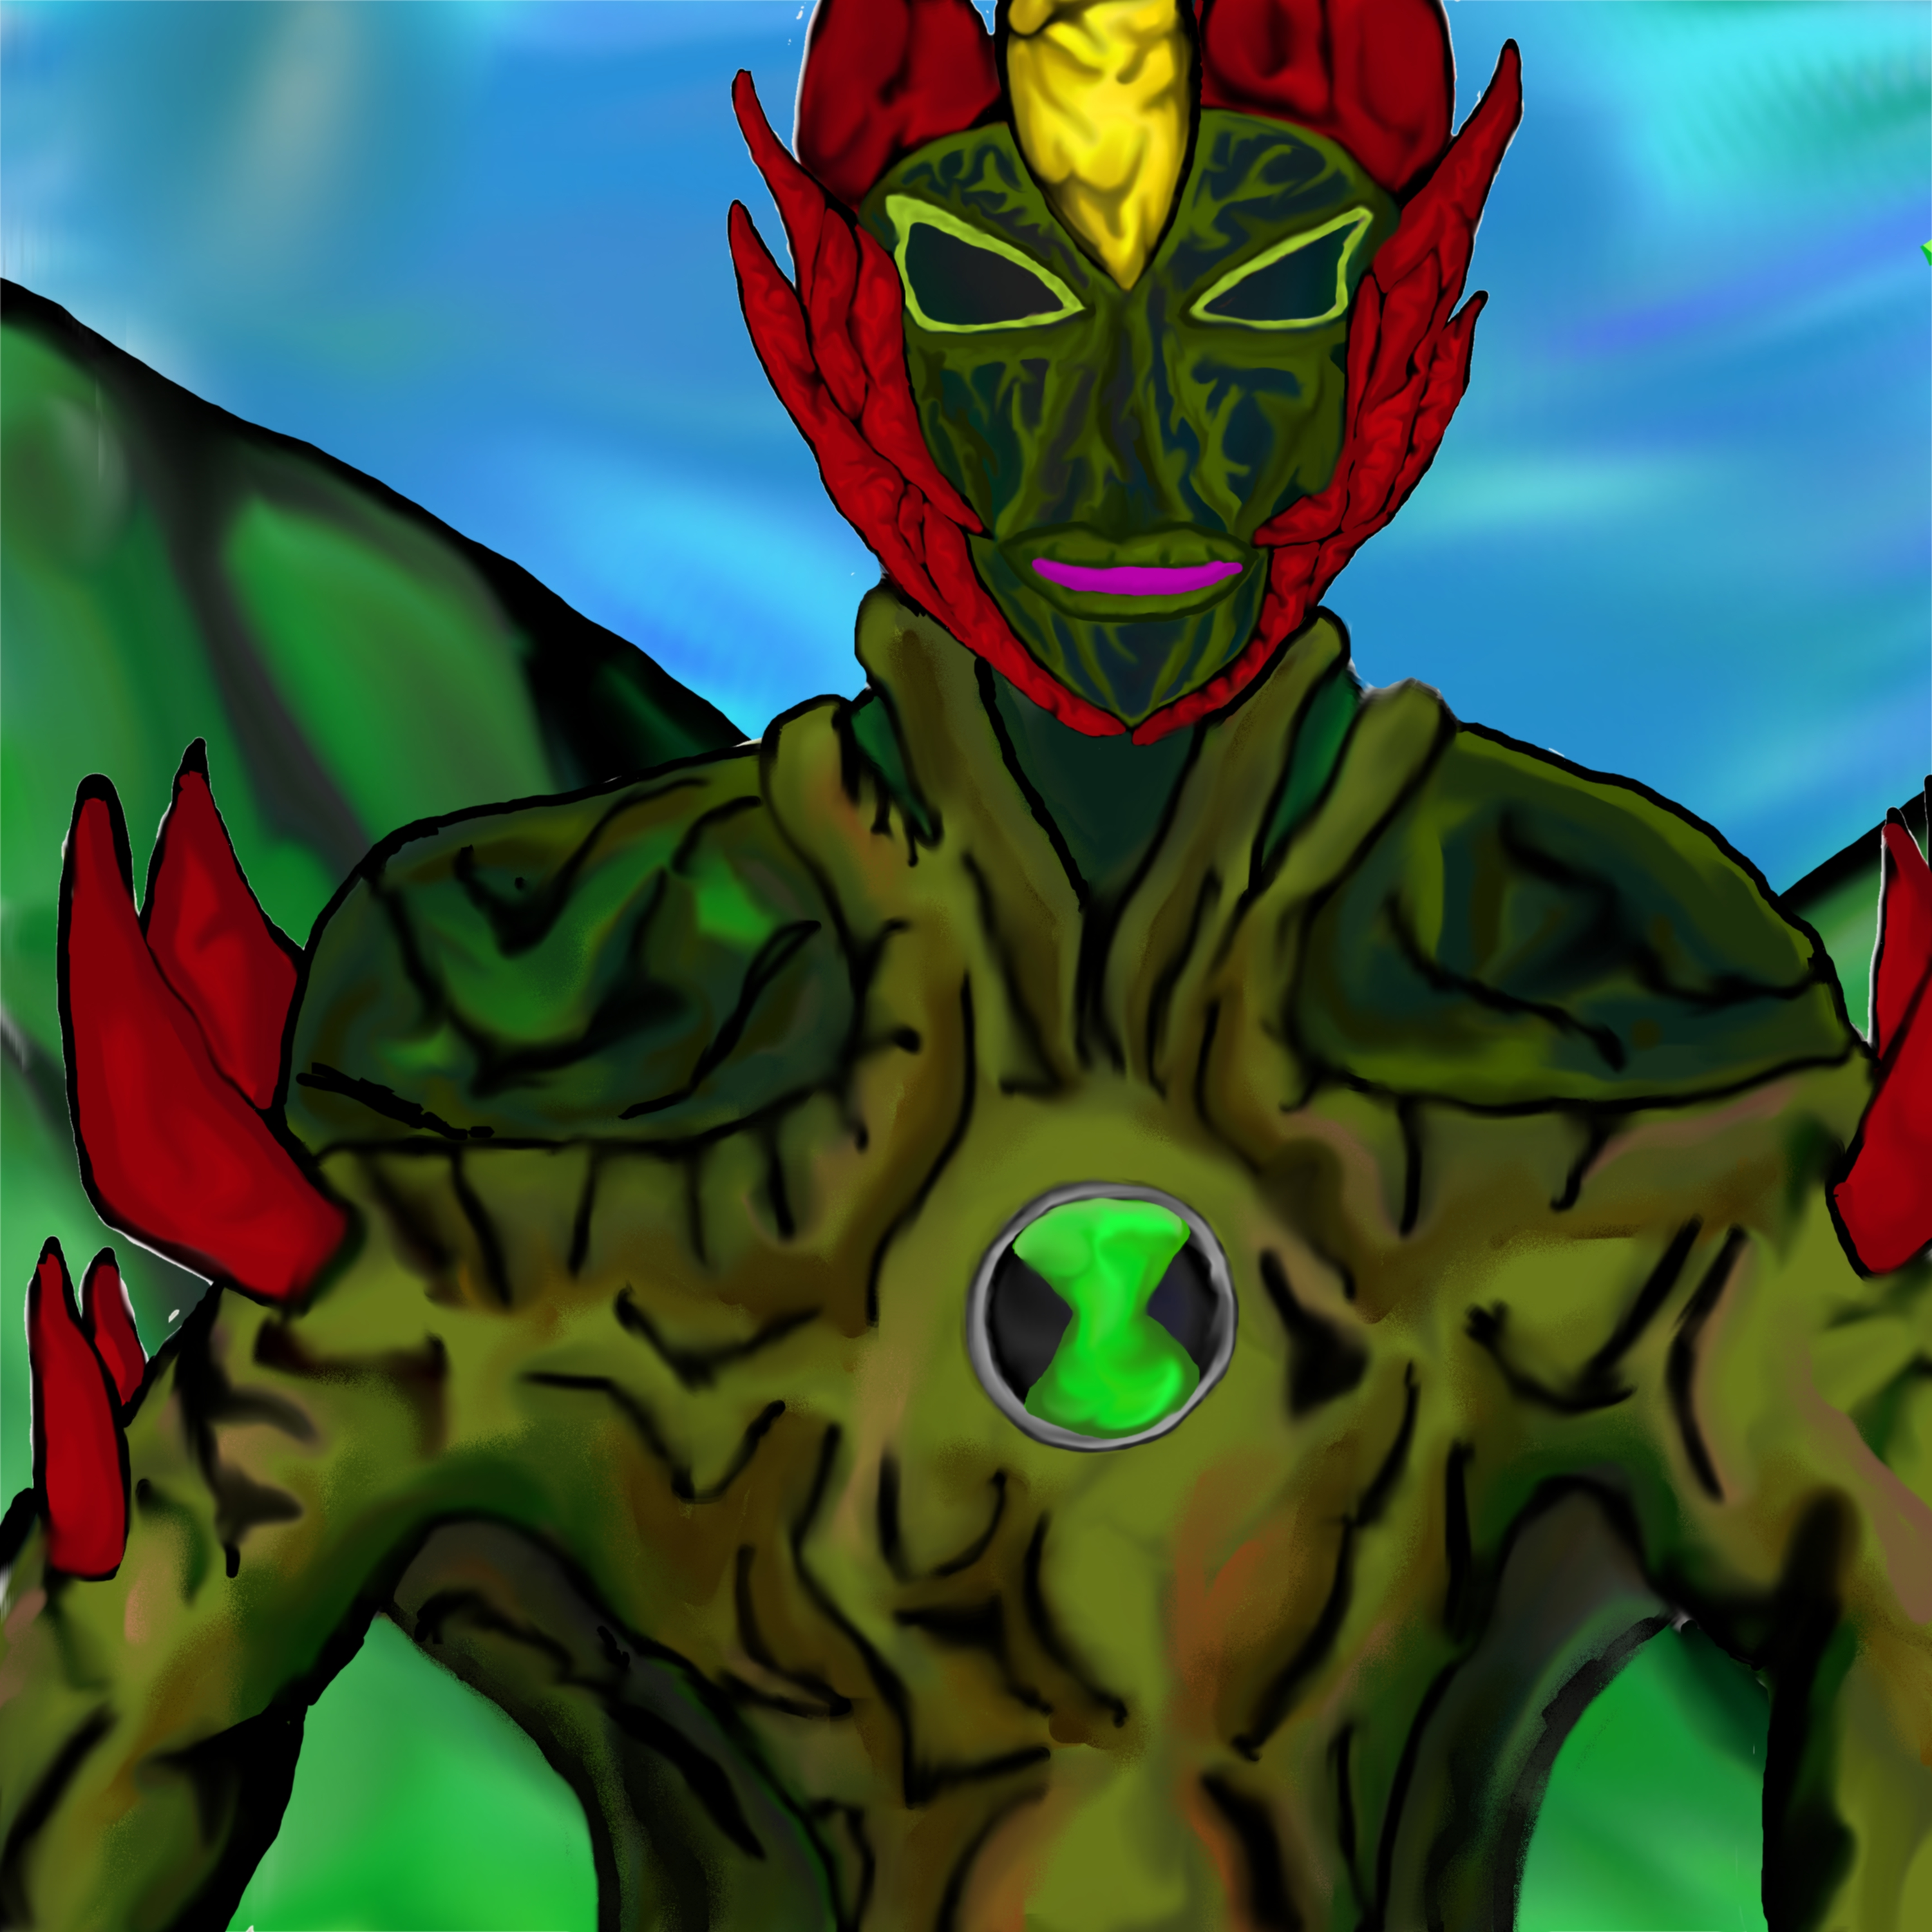 Ben 10 Alien Force: Swampfire by dragonfire53511 on DeviantArt